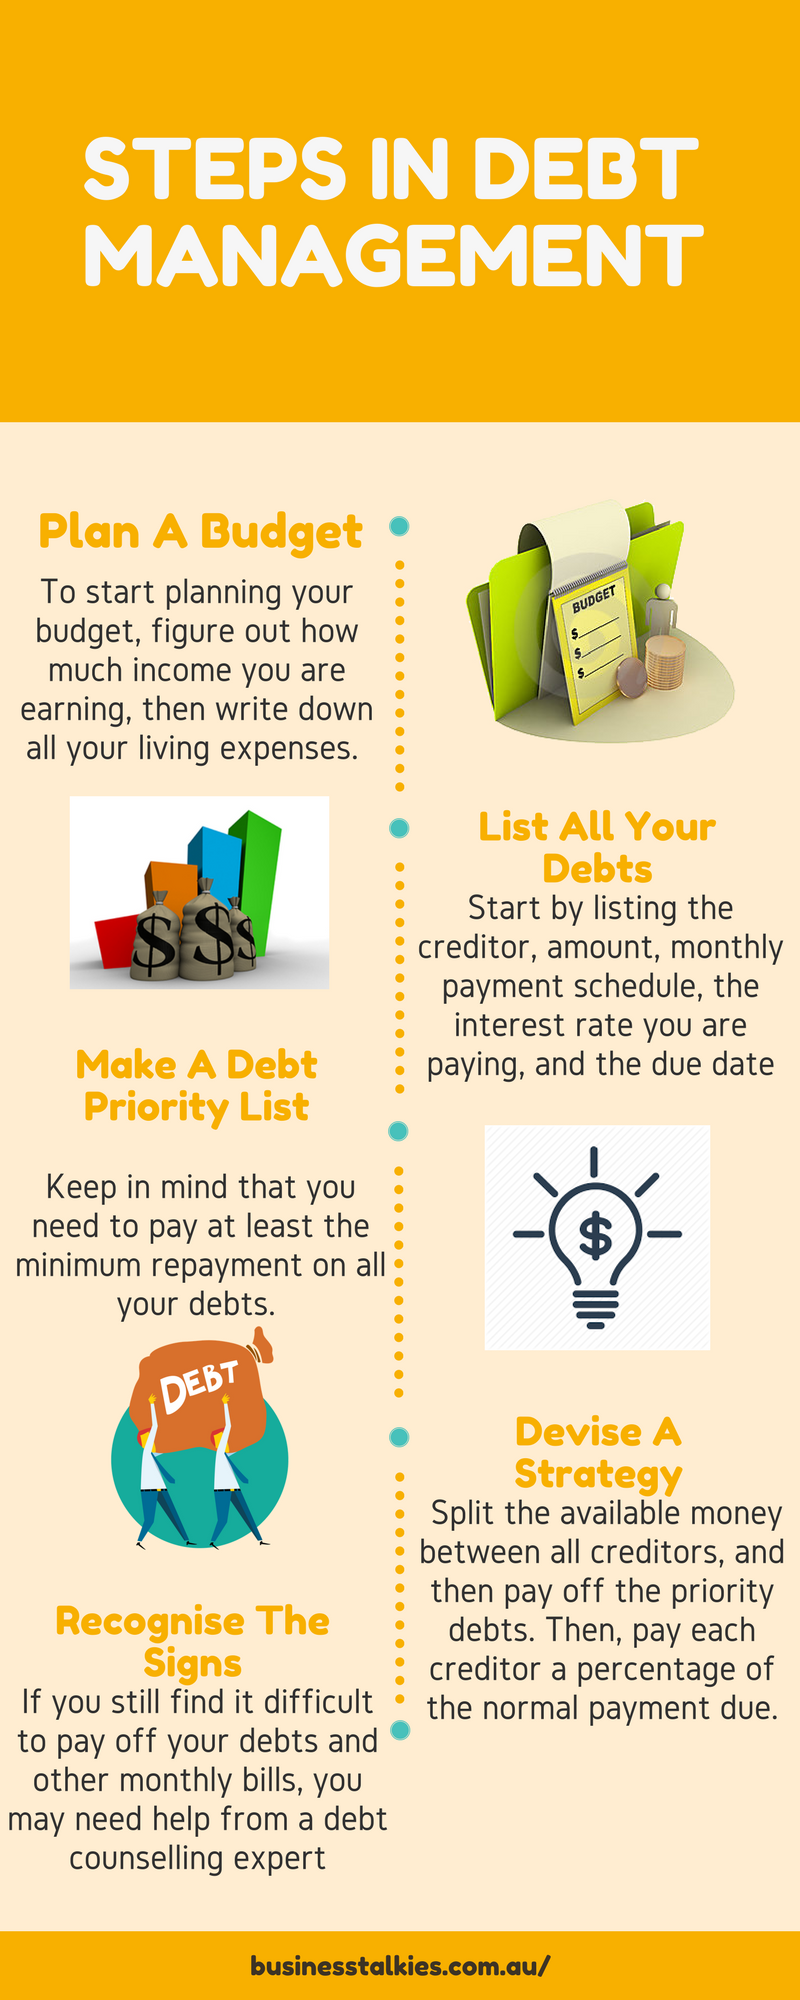 Steps in Debt Management